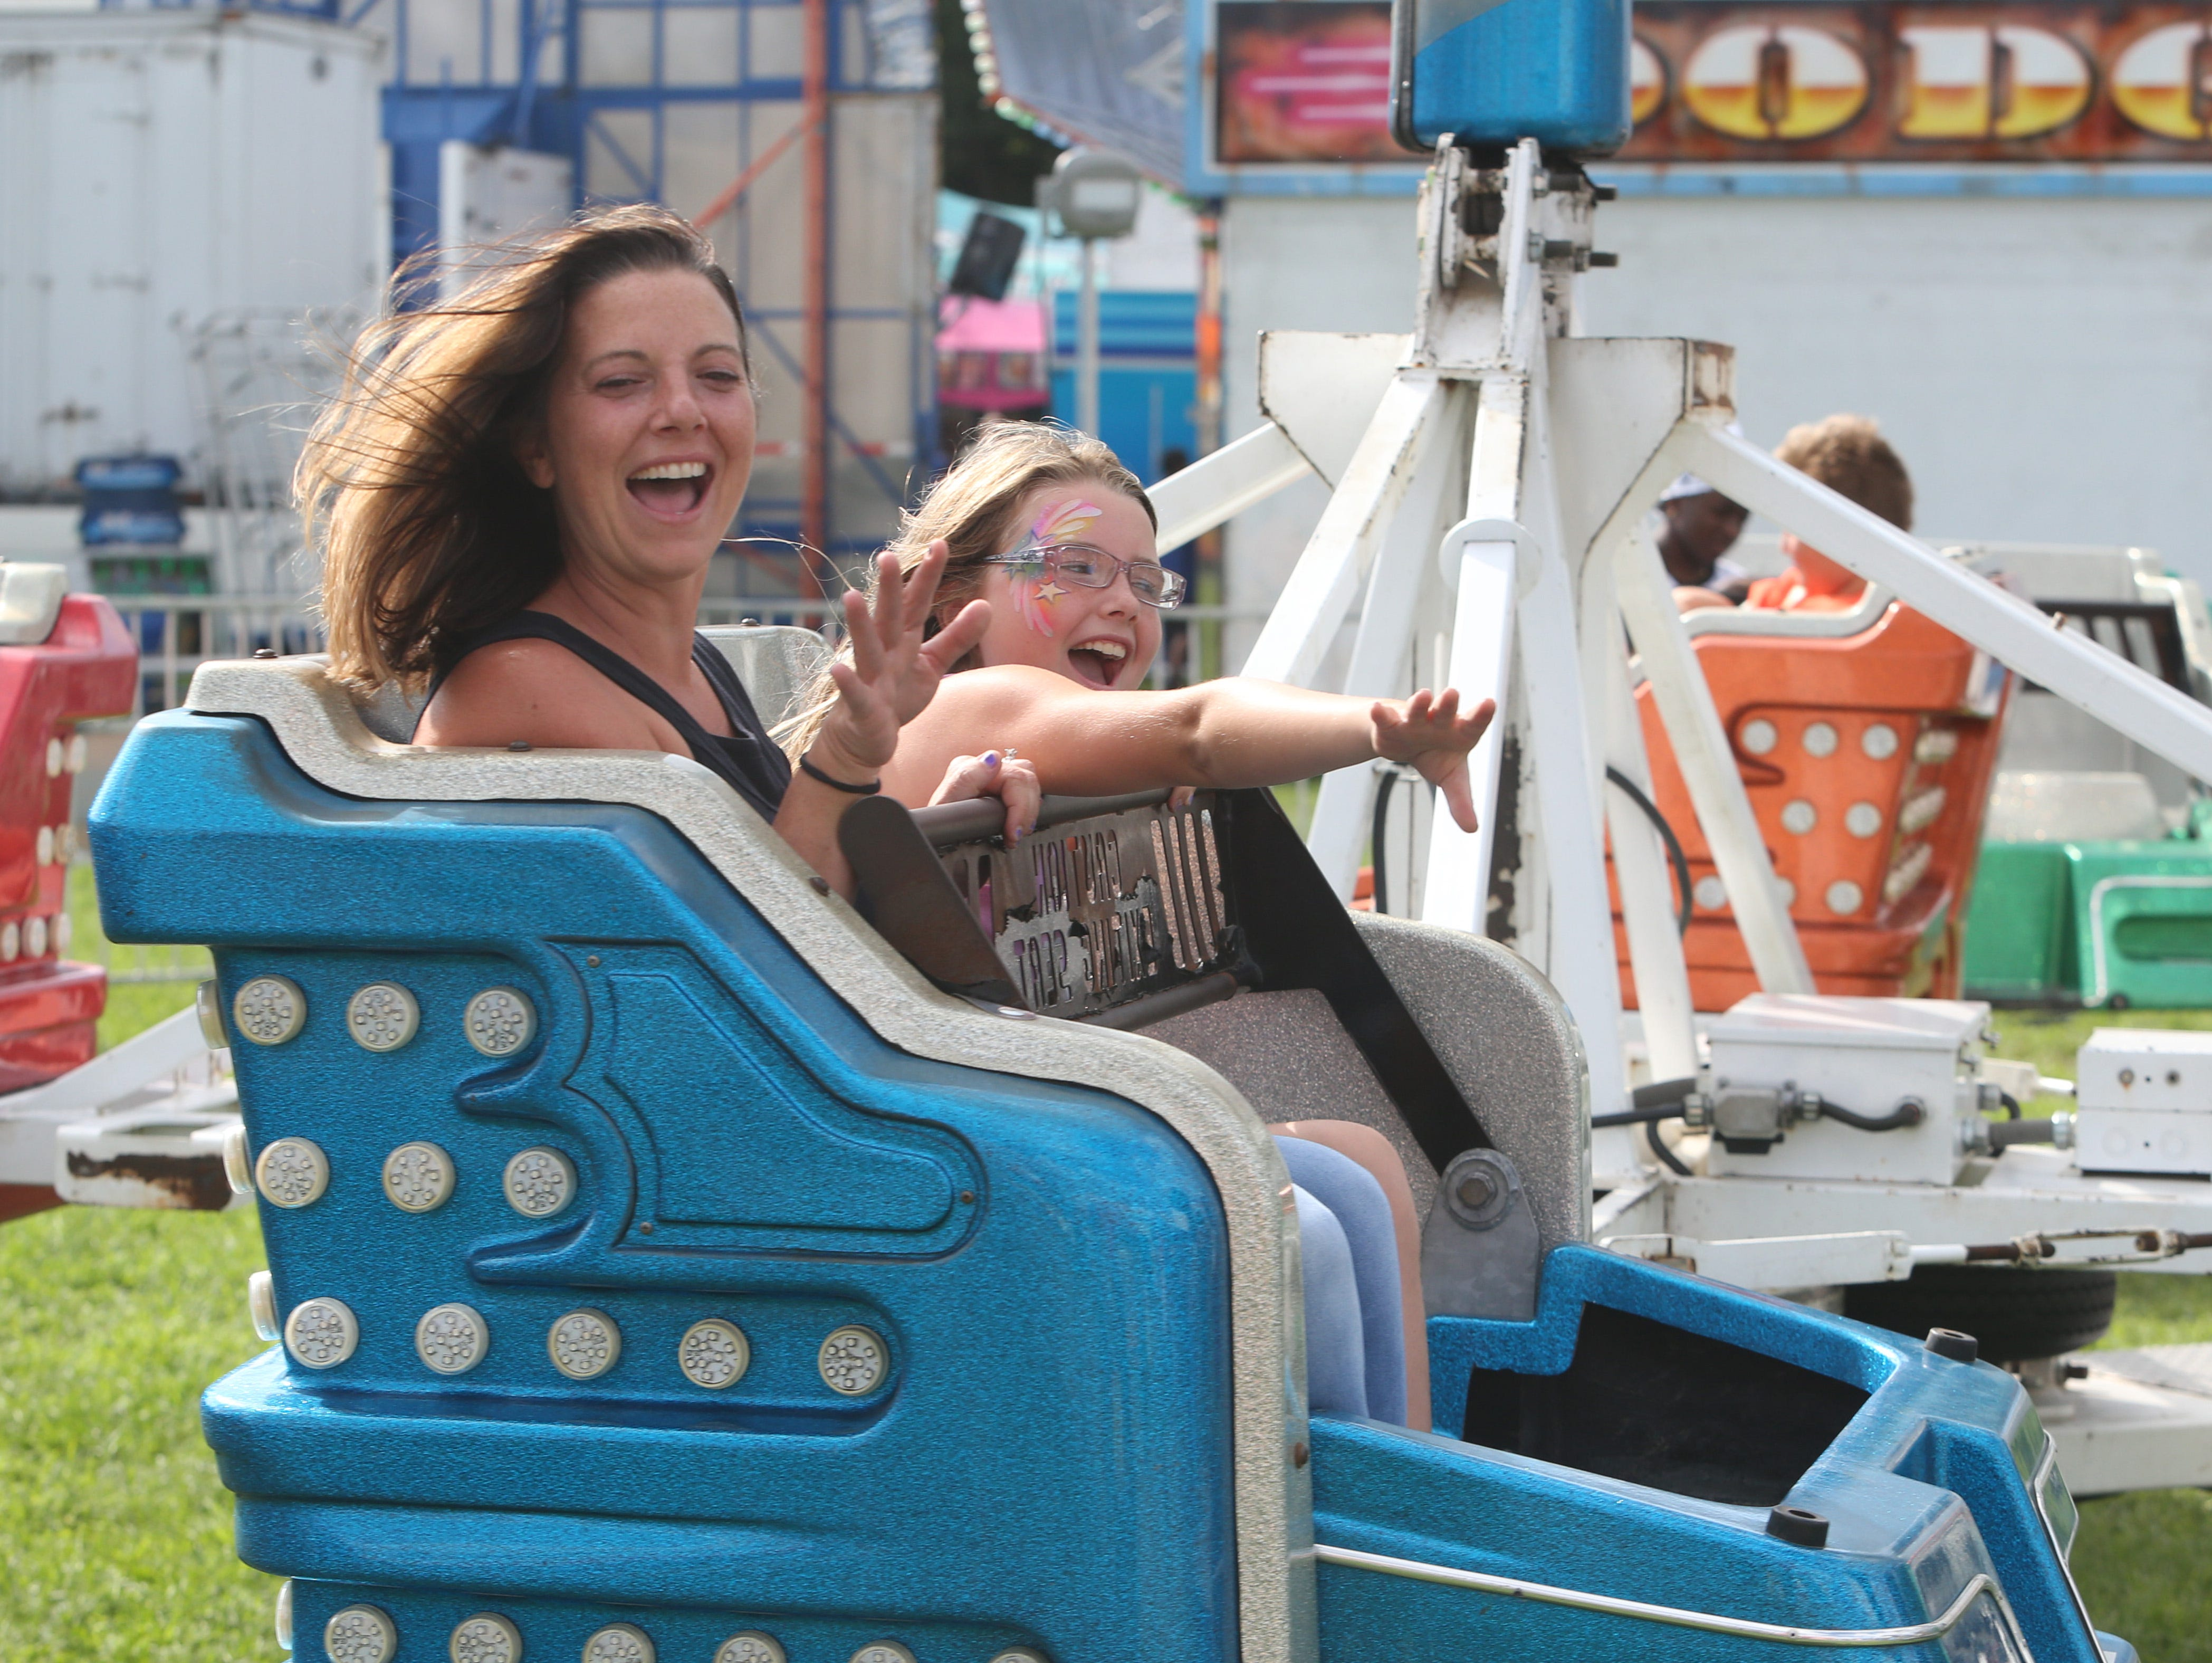 Kelly Schluter rides the Sizzler with her daughter, Hayley, at the Dutchess County Fair on August 21, 2018.